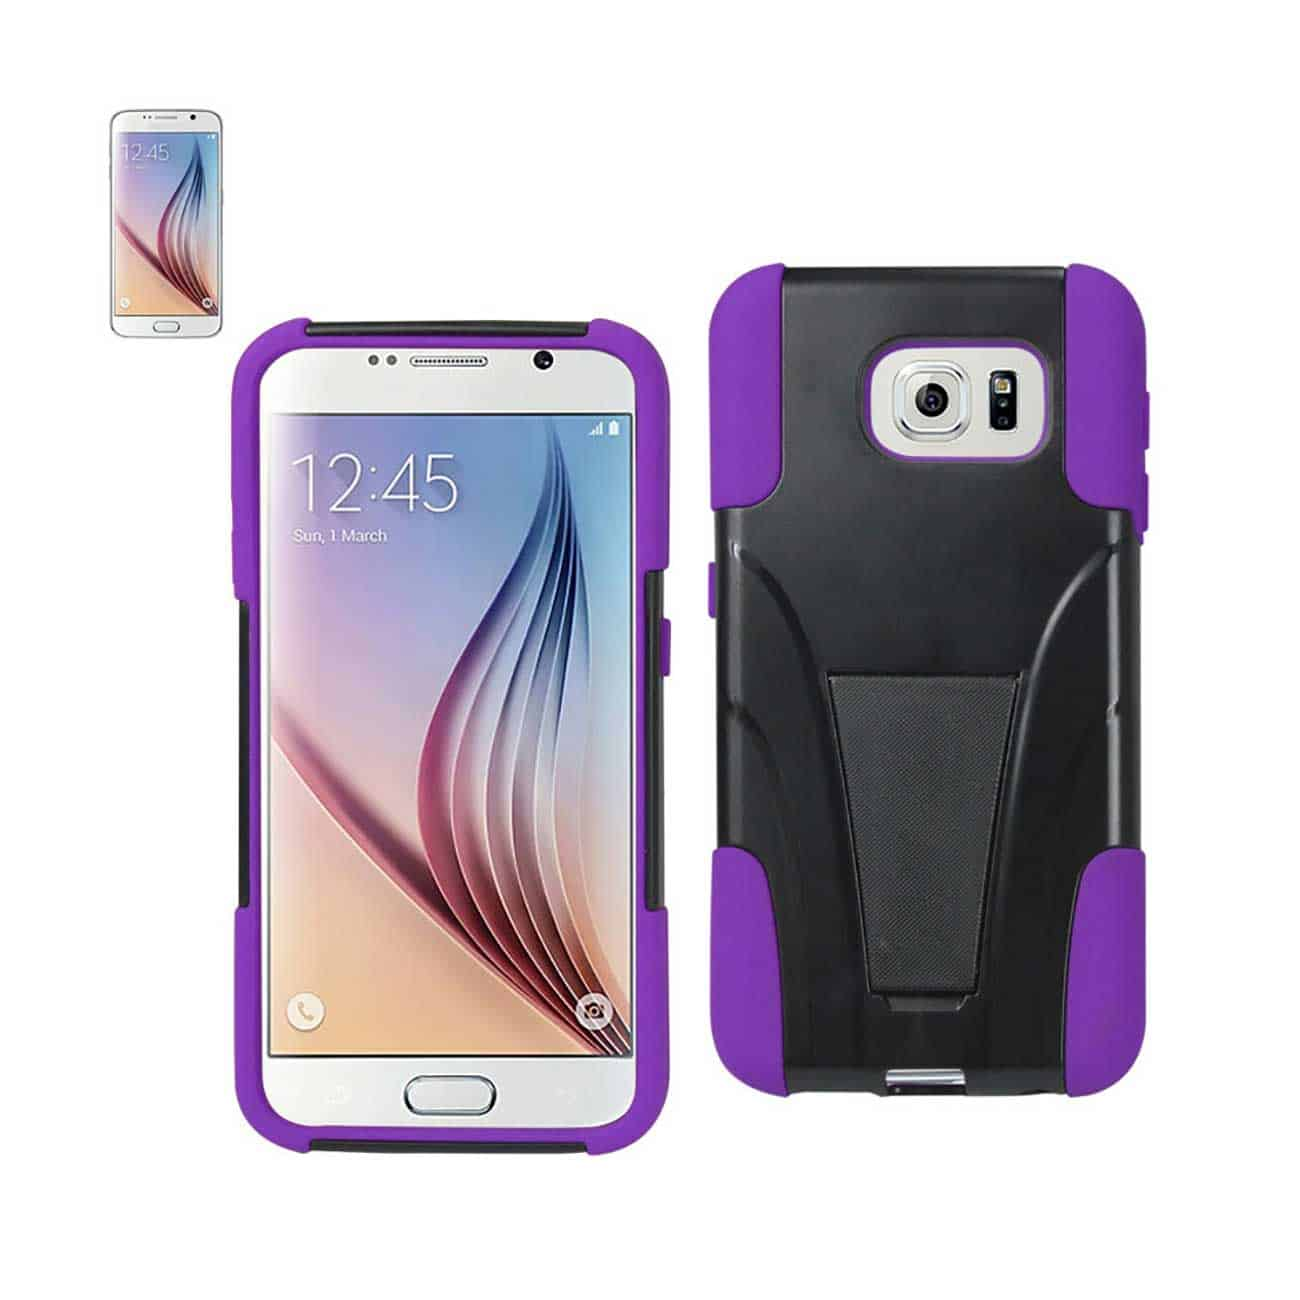 SAMSUNG GALAXY S6 HYBRID HEAVY DUTY CASE WITH KICKSTAND IN PURPLE BLACK